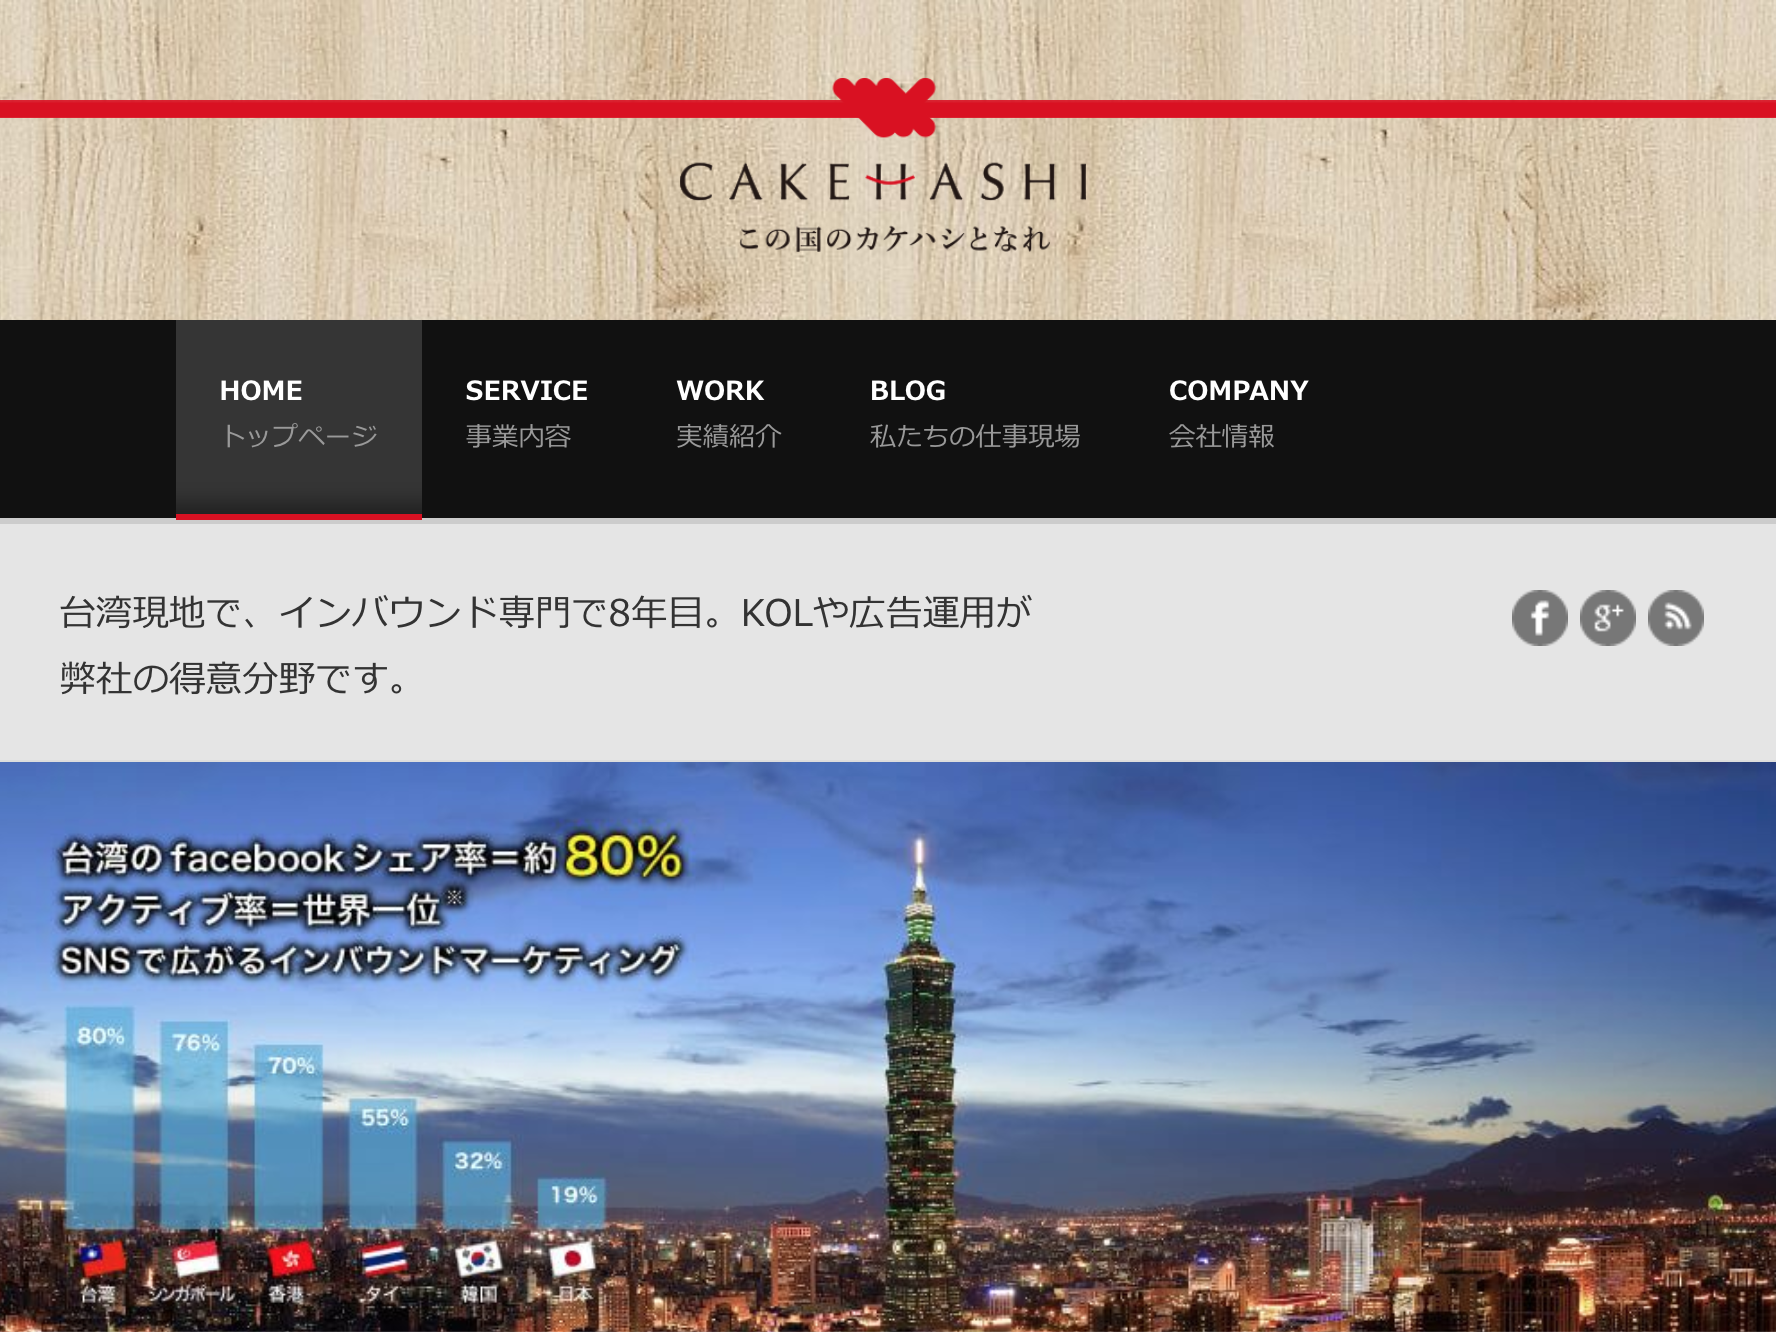 CAKEHASHI corporation